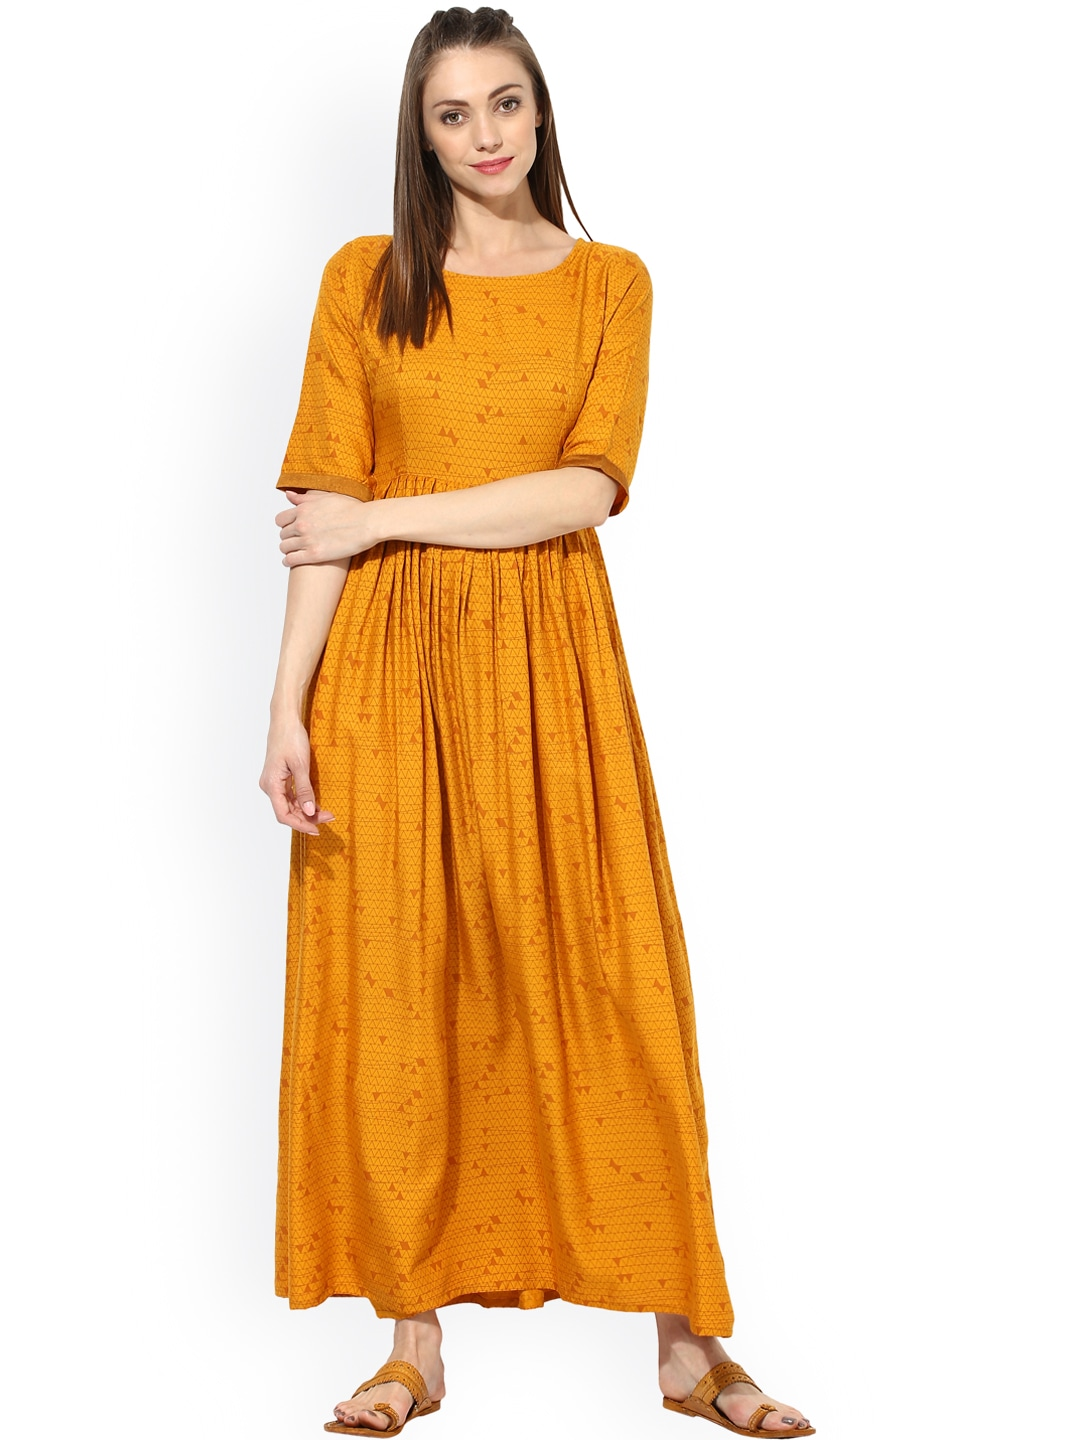 Maxi Dresses - Buy Maxi Dresses for Women Online - Myntra